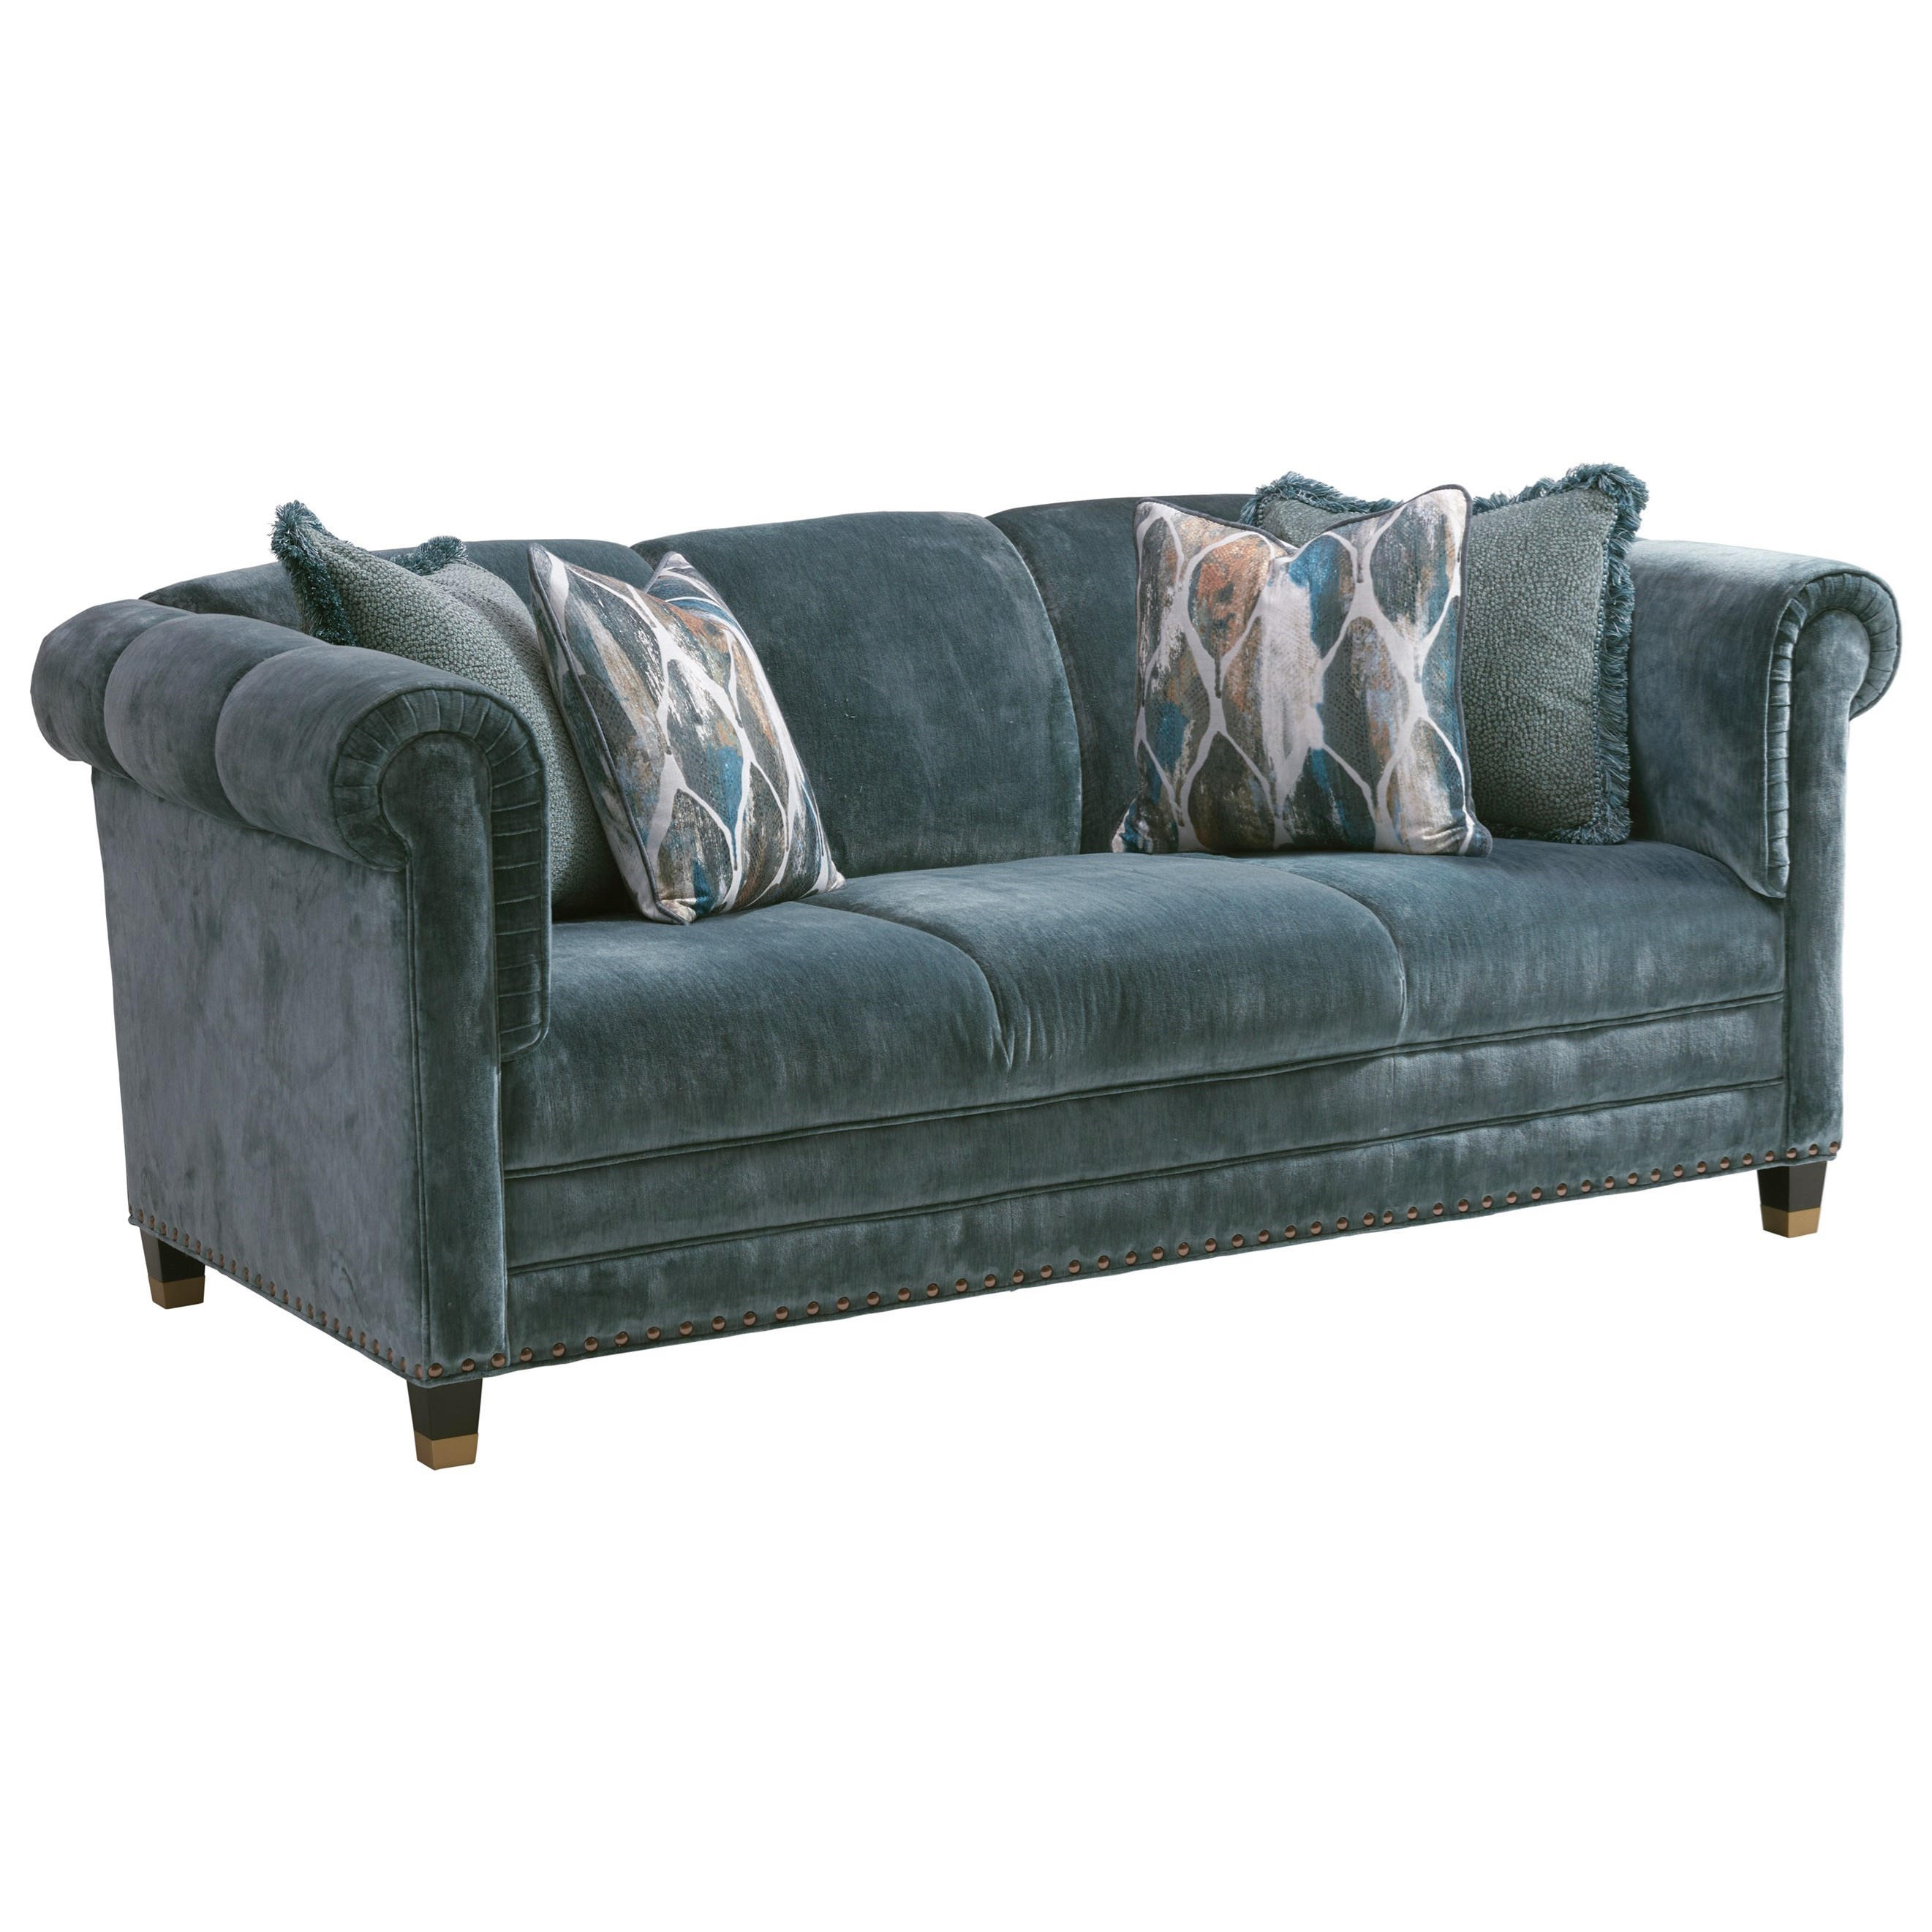 Springfield Apartment Sofa with Nailheads and Ferrules